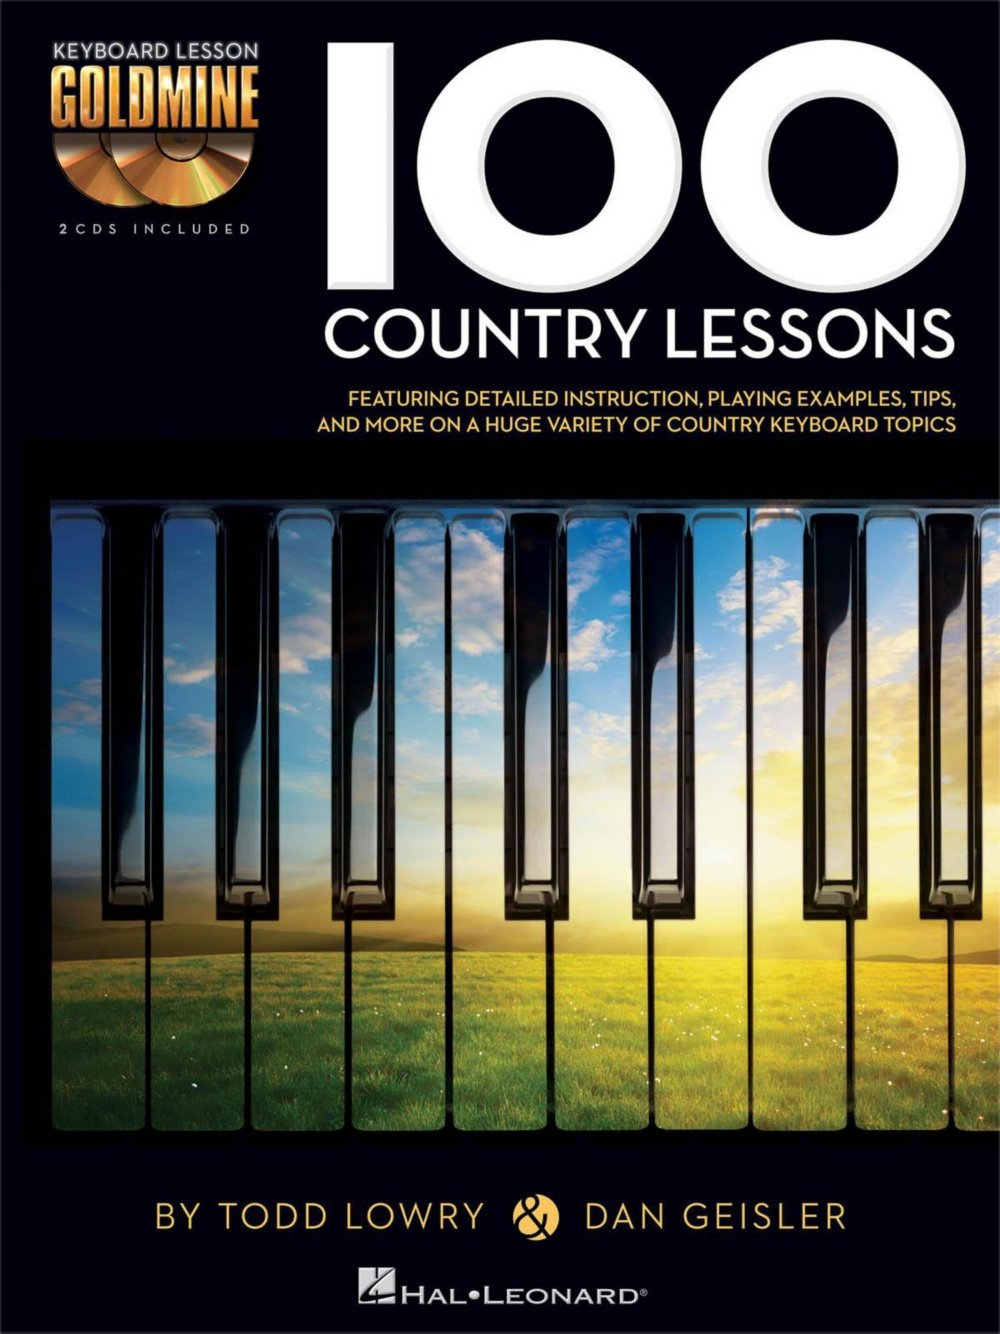 Hal Leonard 100 Country Lessons - Keyboard Lesson Goldmine Series Series  Book/2-CD Pack: Hal Leonard: 0884088949372: Amazon.com: Books